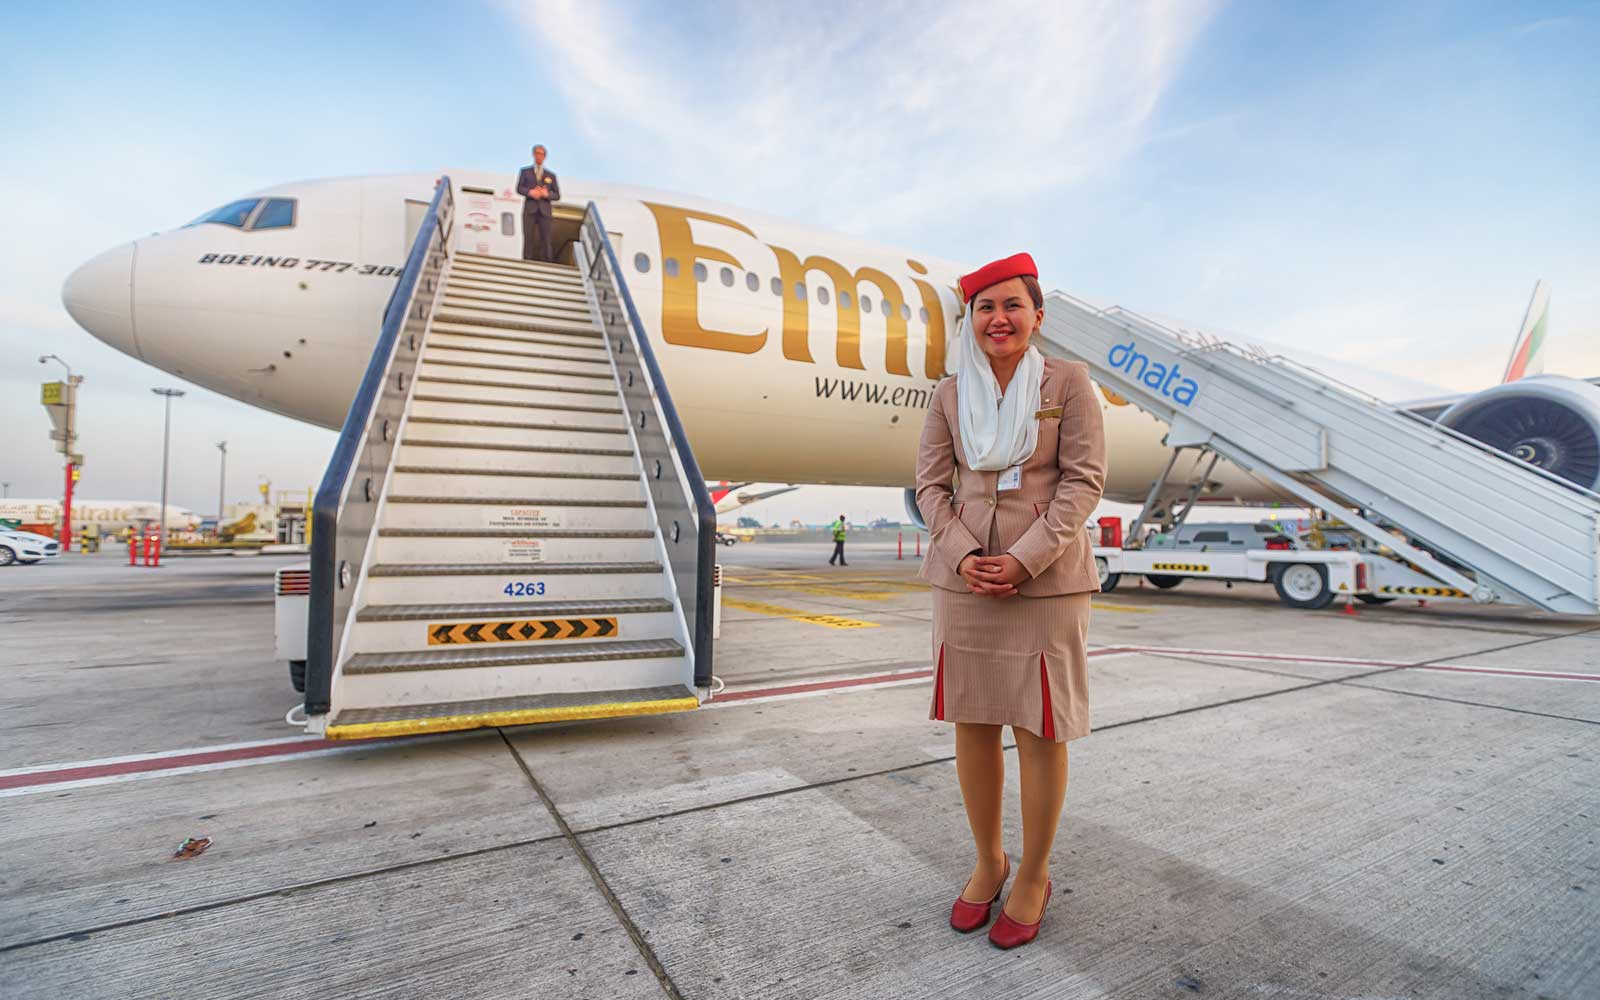 Emirates flight attendant standing outside of an airplane at the airport